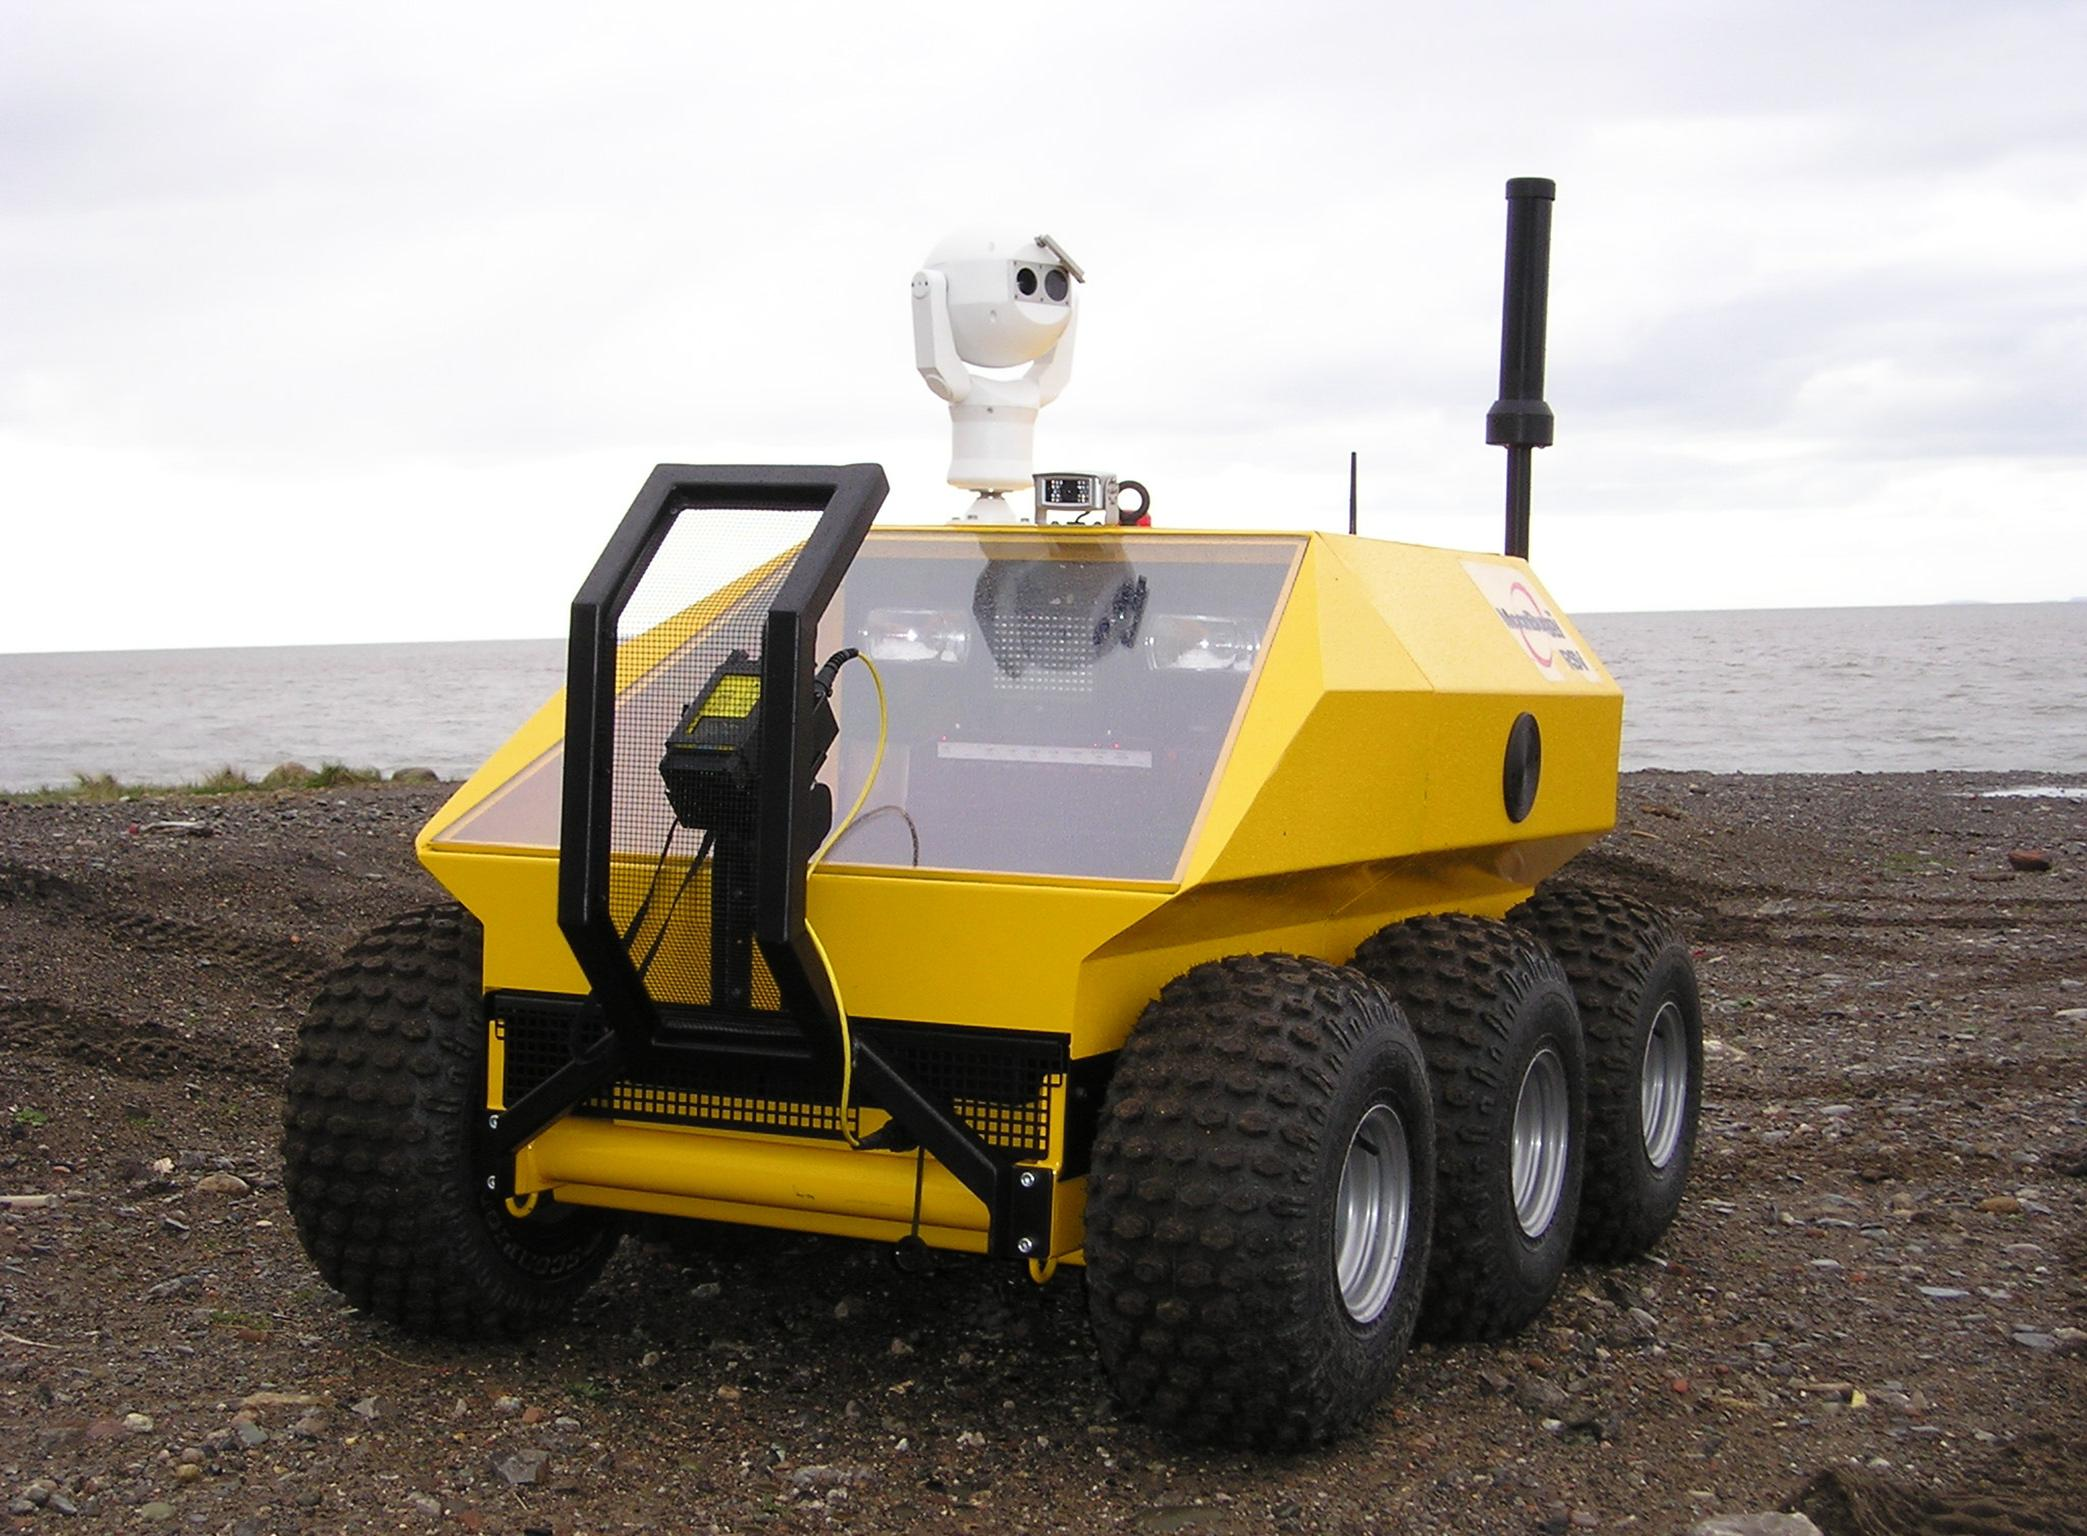 MoonBuggy™  First Response Unmanned Ground Vehicle. Designed and built at our Maryport facility, the vehicle can be operated up to 2 miles from a nuclear incident.